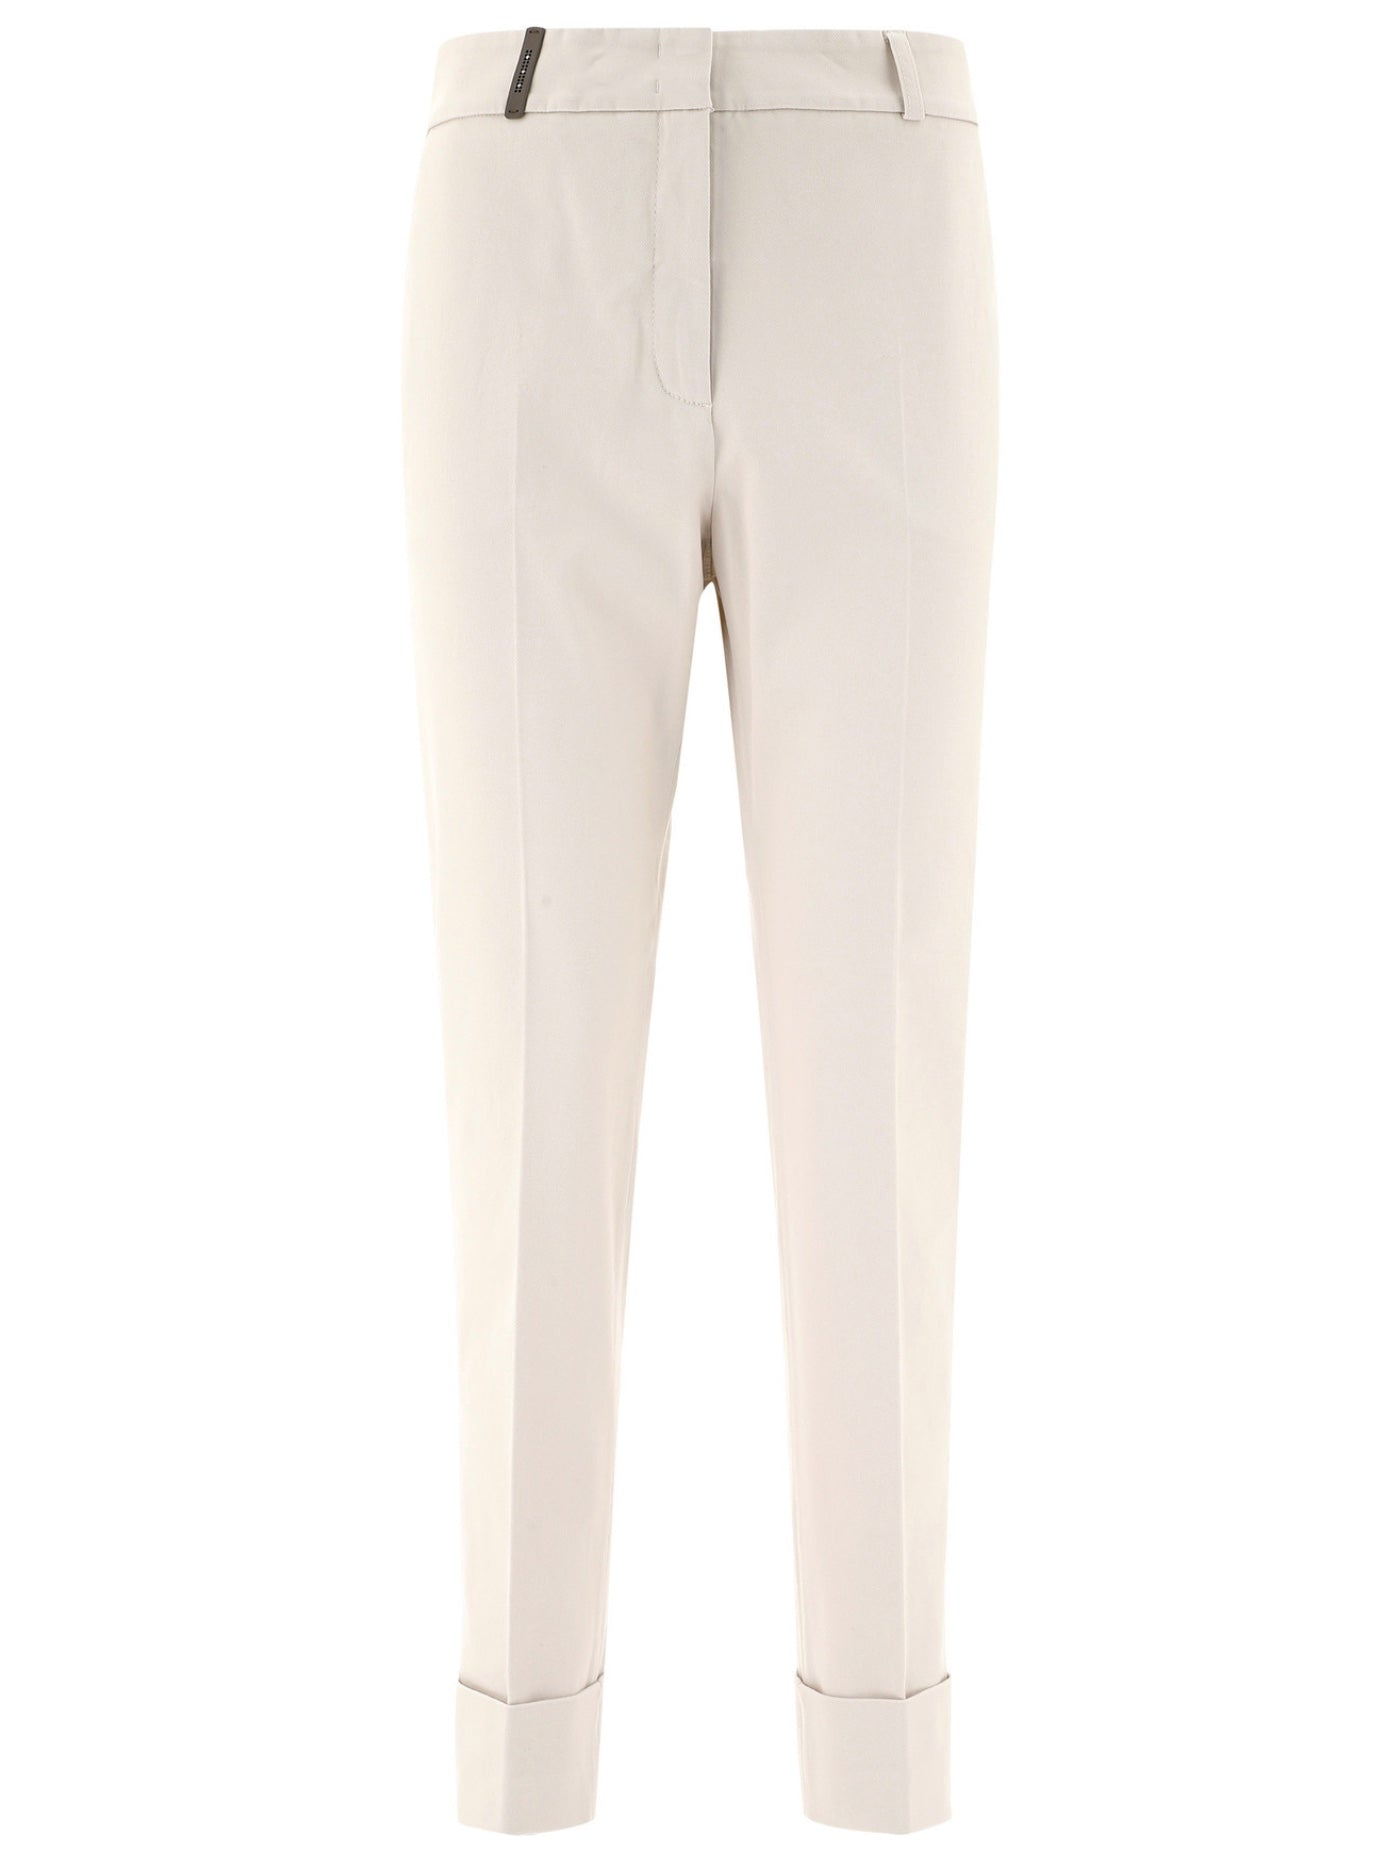 Stretch Cotton Cuffed Pant in Sand